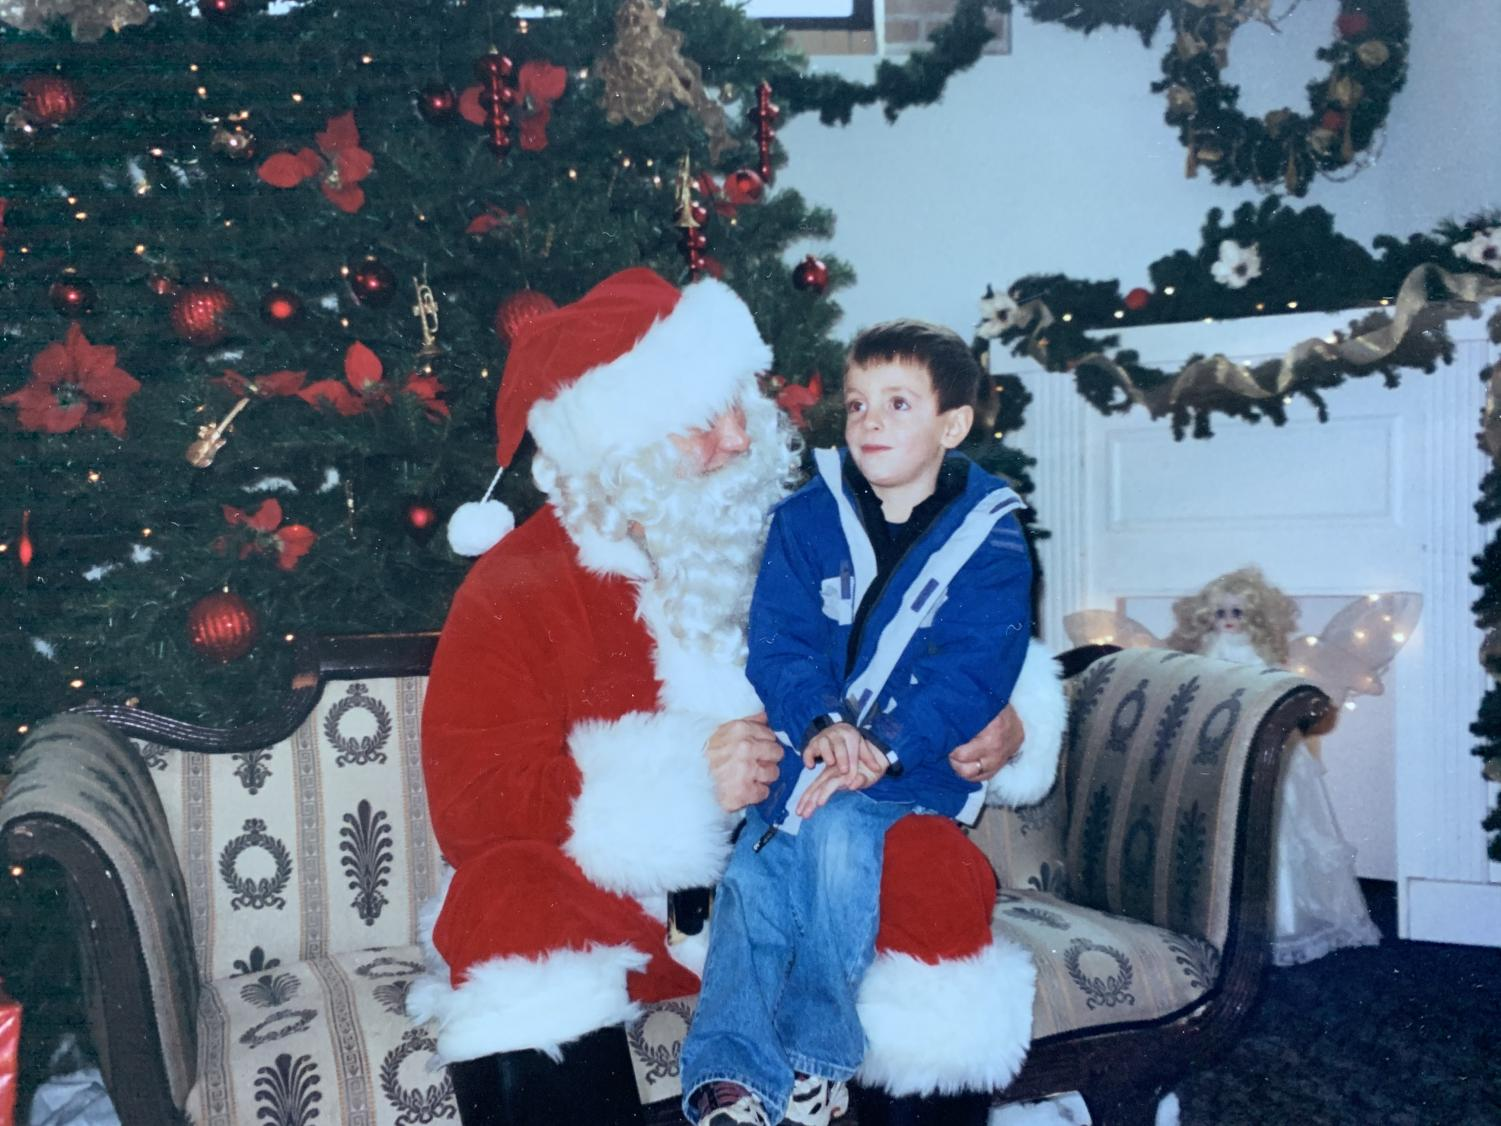 Every year thousands of people put on a red suit and go to work as Santa Claus in their town. These Santas are visited by hundreds if not thousands of children per day. Although jolly at first glance, mall Santas are slowly destroying the joy and magic of the holiday season.